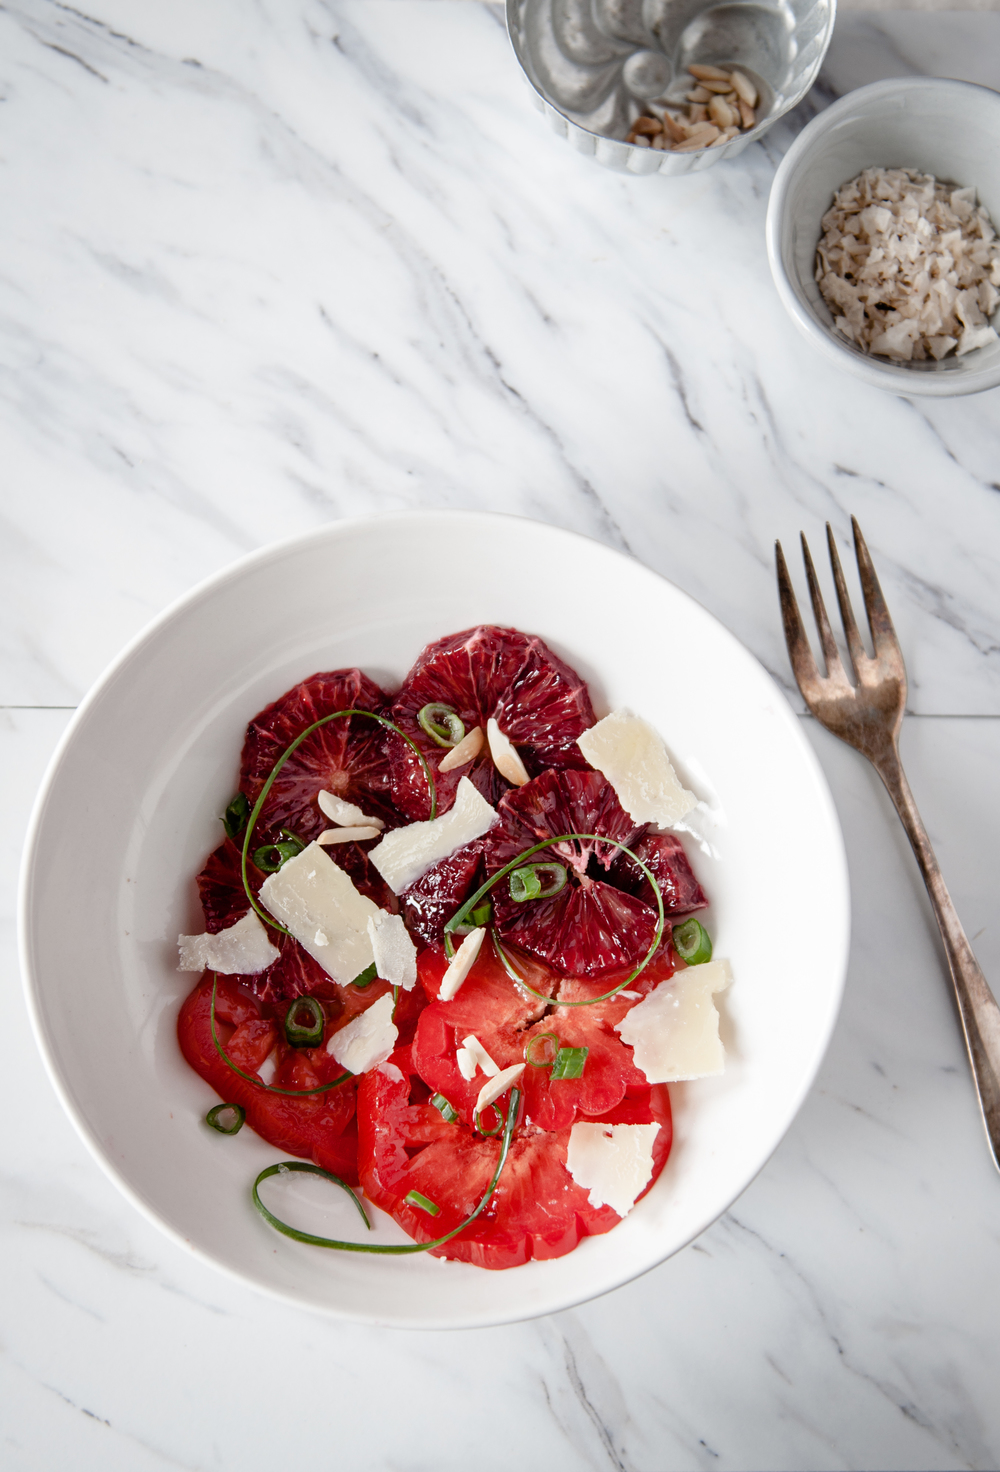 HEIRLOOM TOMATO AND BLOOD ORANGE SALAD